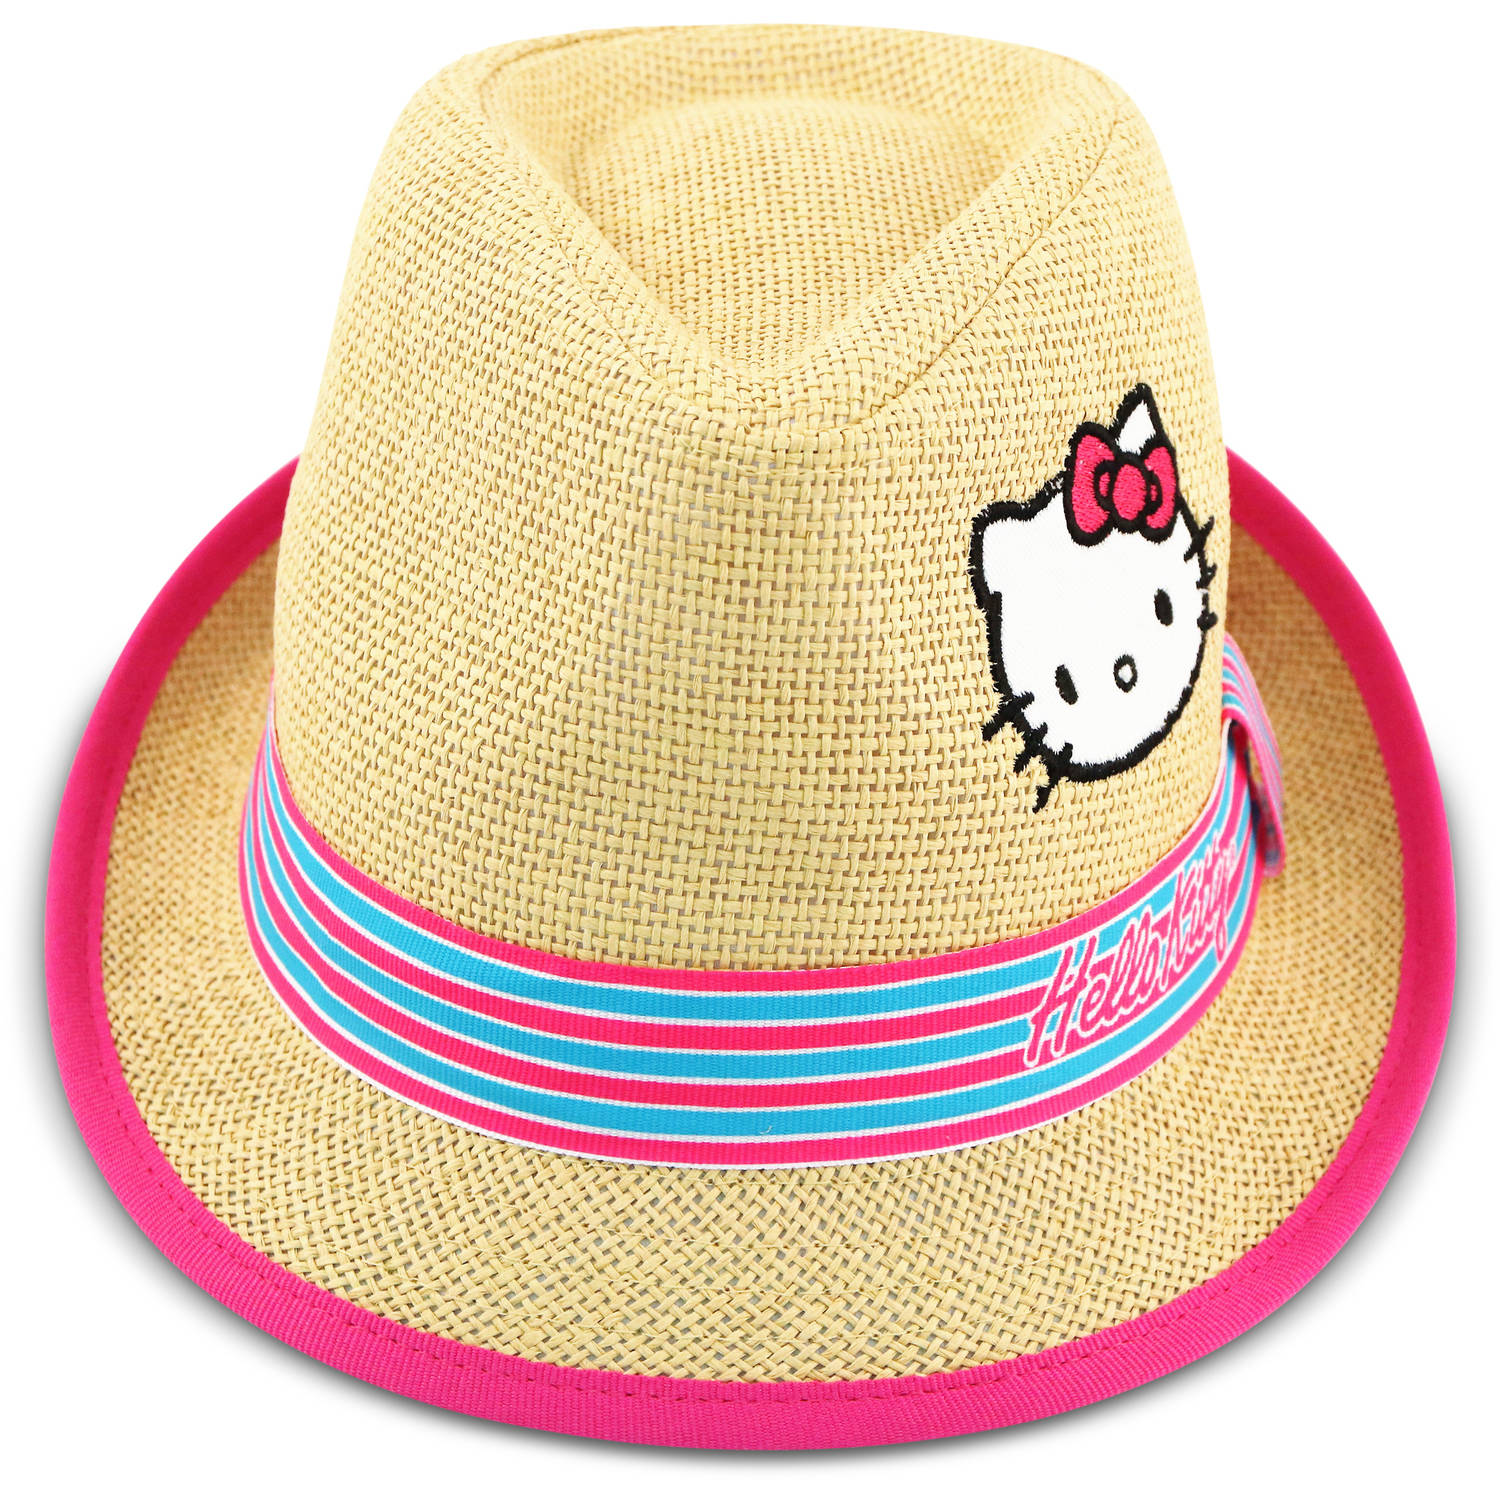 Sanrio Hello Kitty natural straw fedora with chevron pink and blue band.